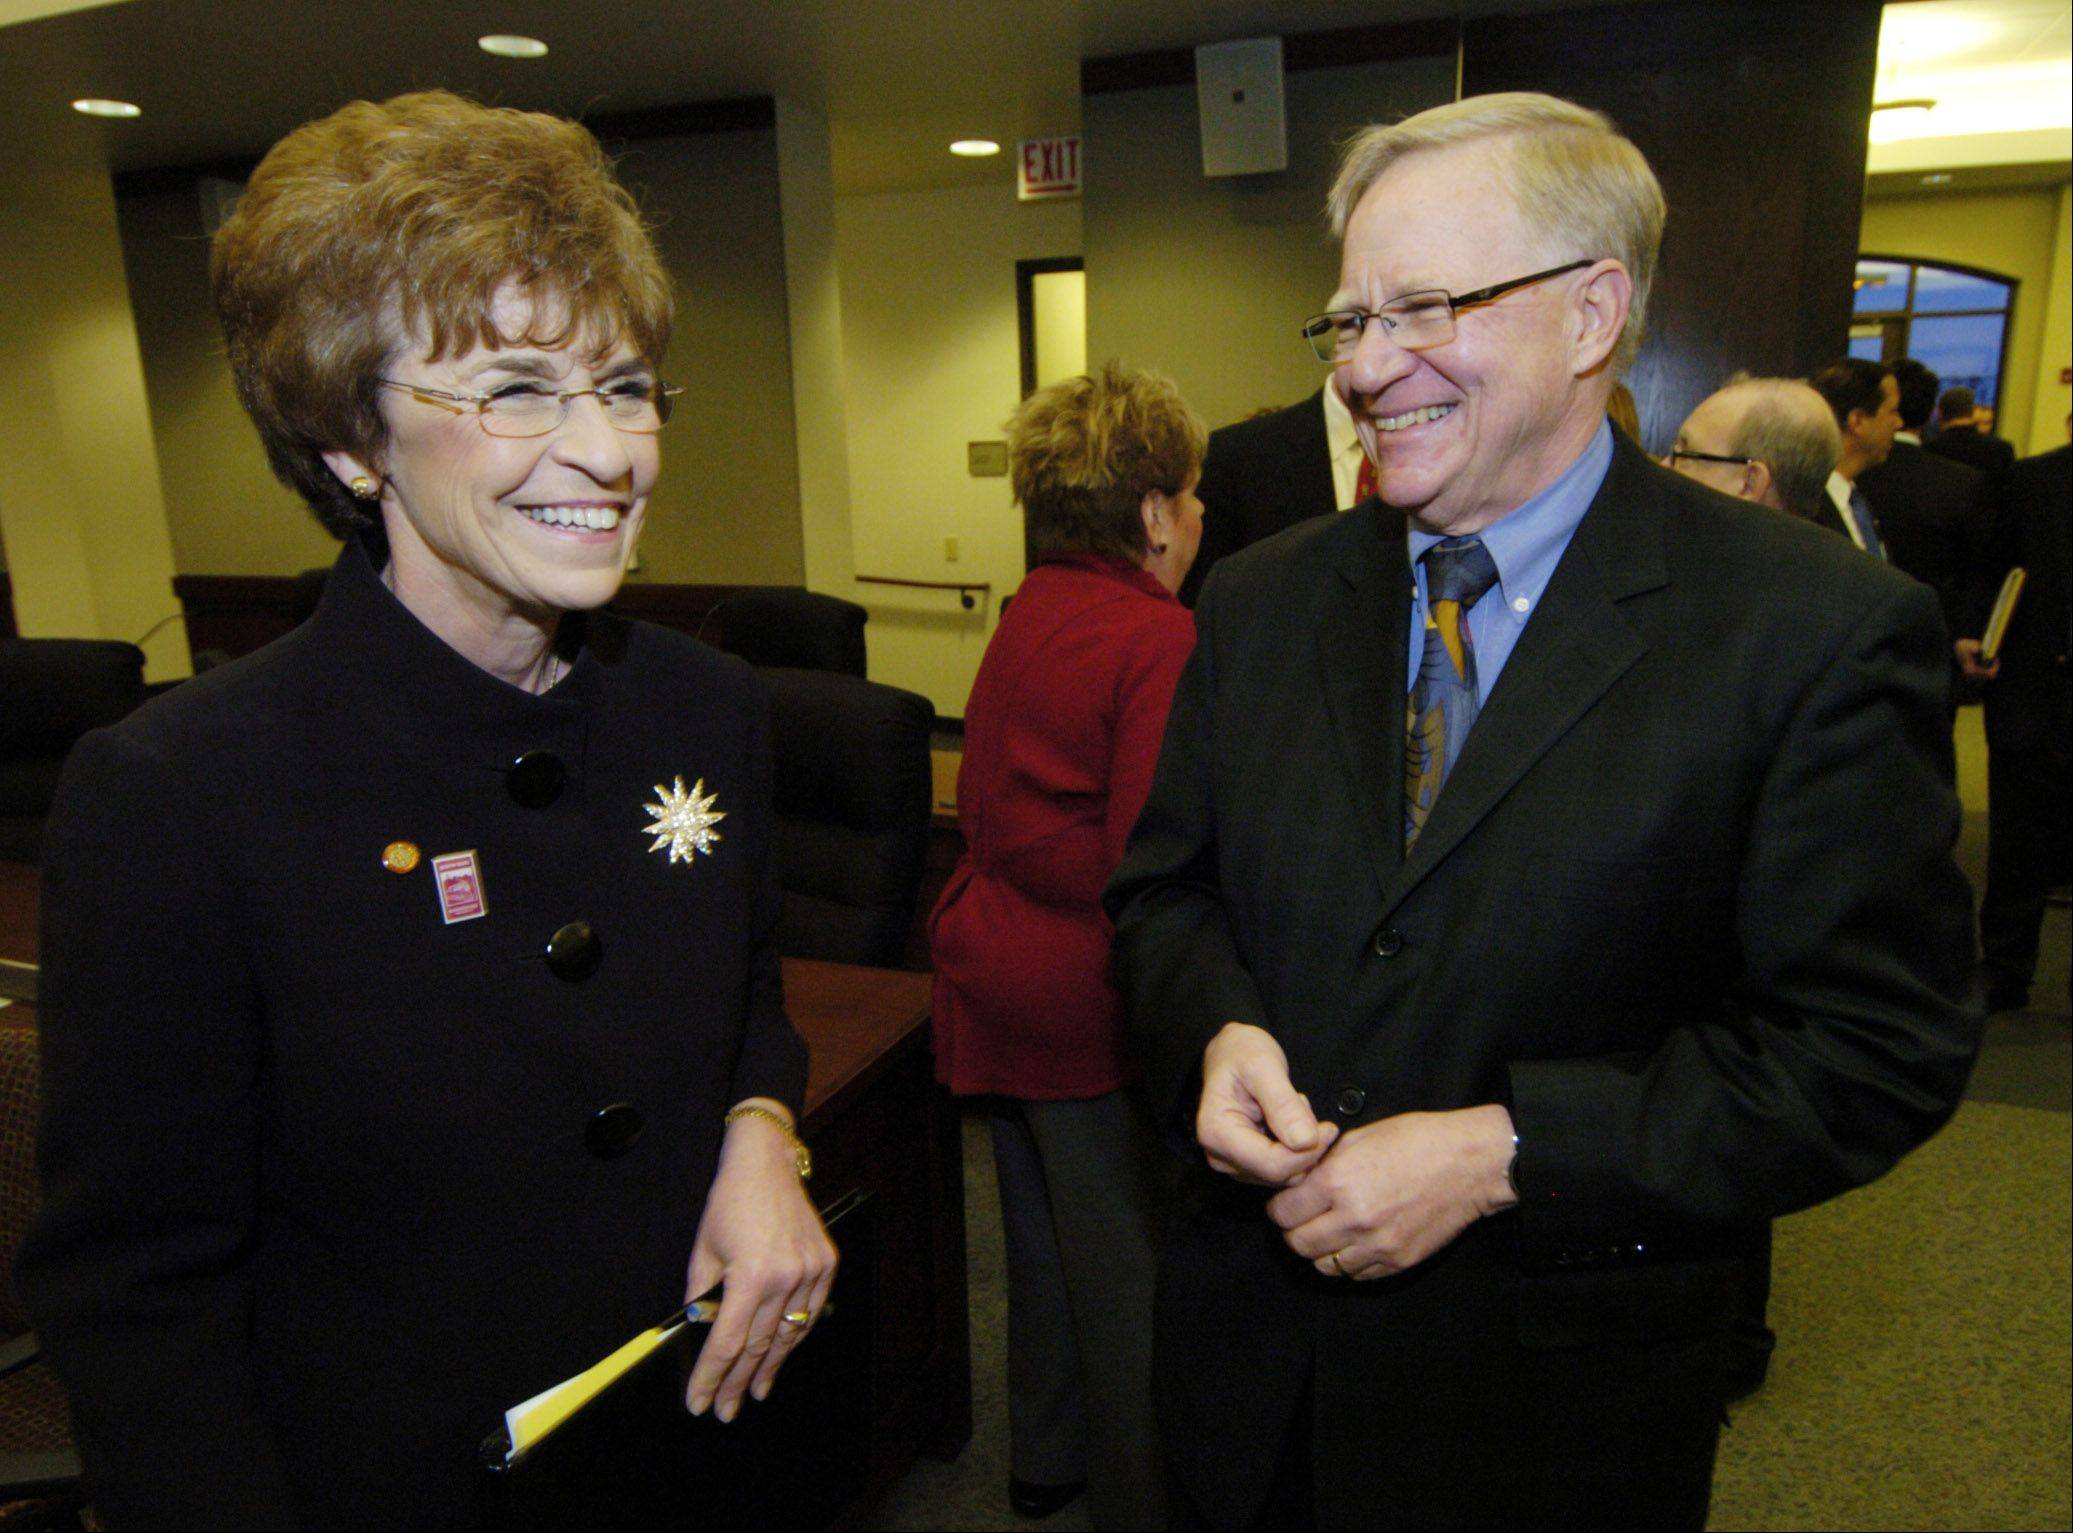 Arlington Heights Village President Arlene Mulder, left, greets William Maki, former village president and current presiding judge of the Third Municipal Court in Rolling Meadows. Maki purchased a banner to mark the Quasquicentennial, Mulder said.